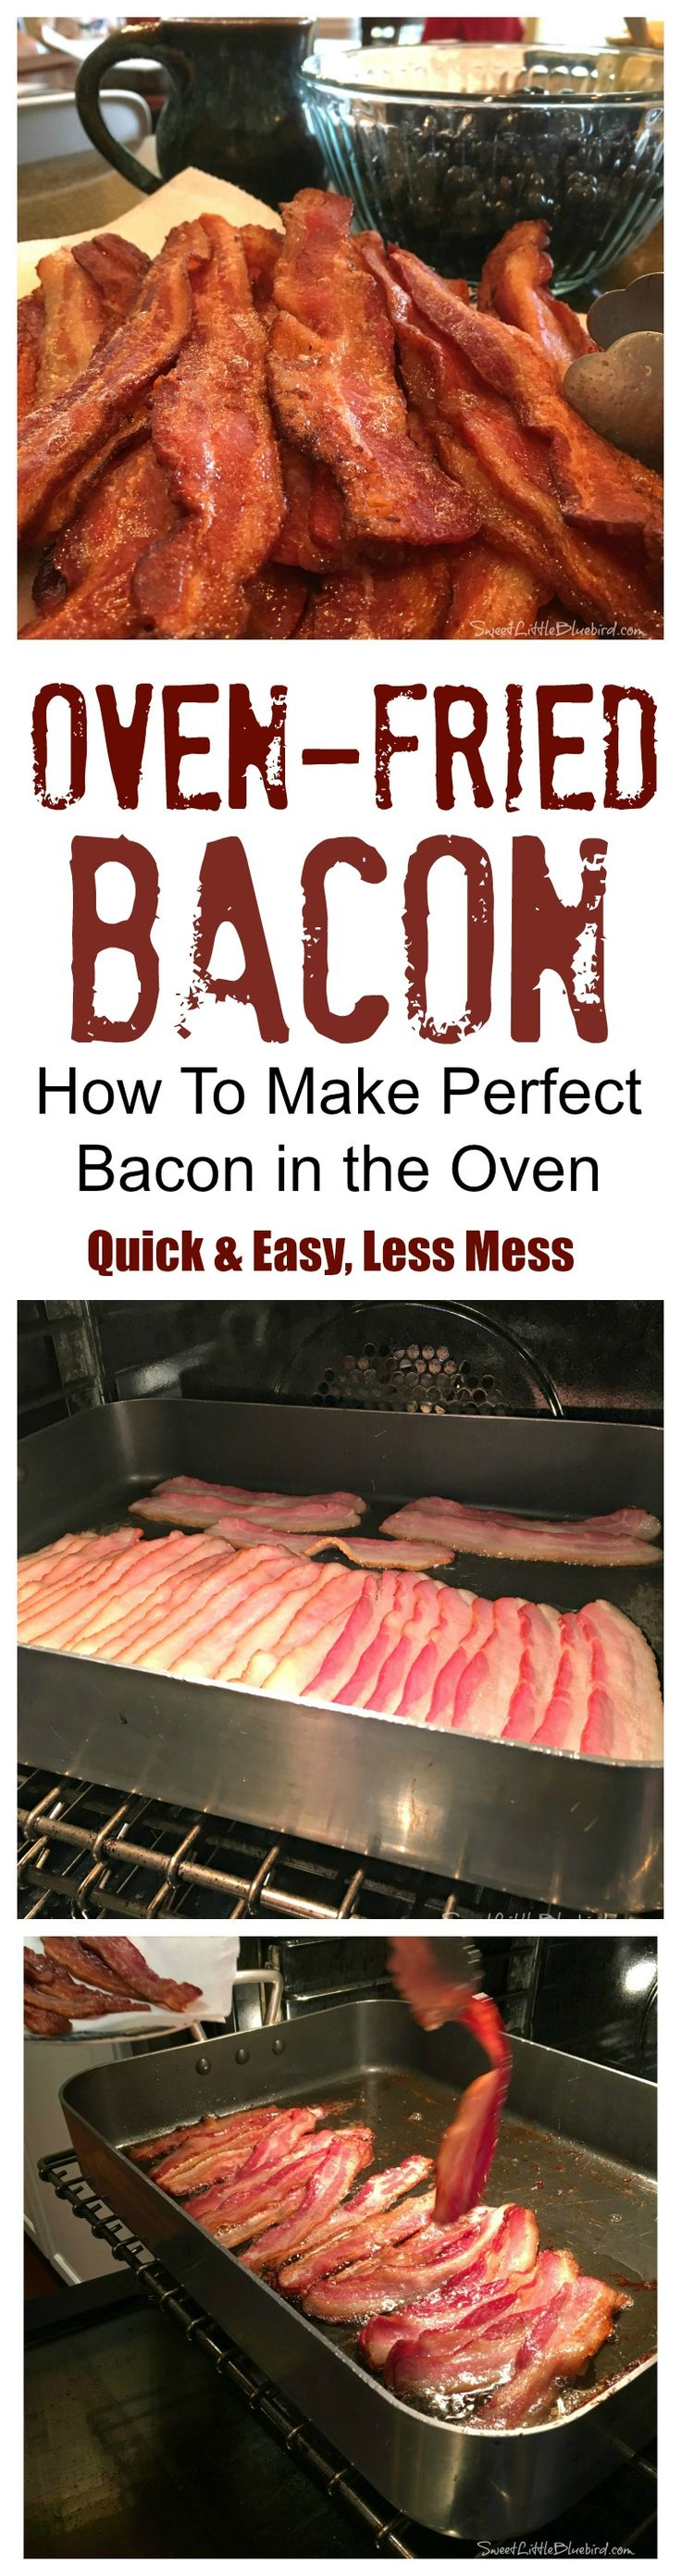 OVEN-FRIED BACON - Quick & Easy, a lot Less Mess!!  Perfect crispy bacon every time!! |  SweetLittleBluebird.com